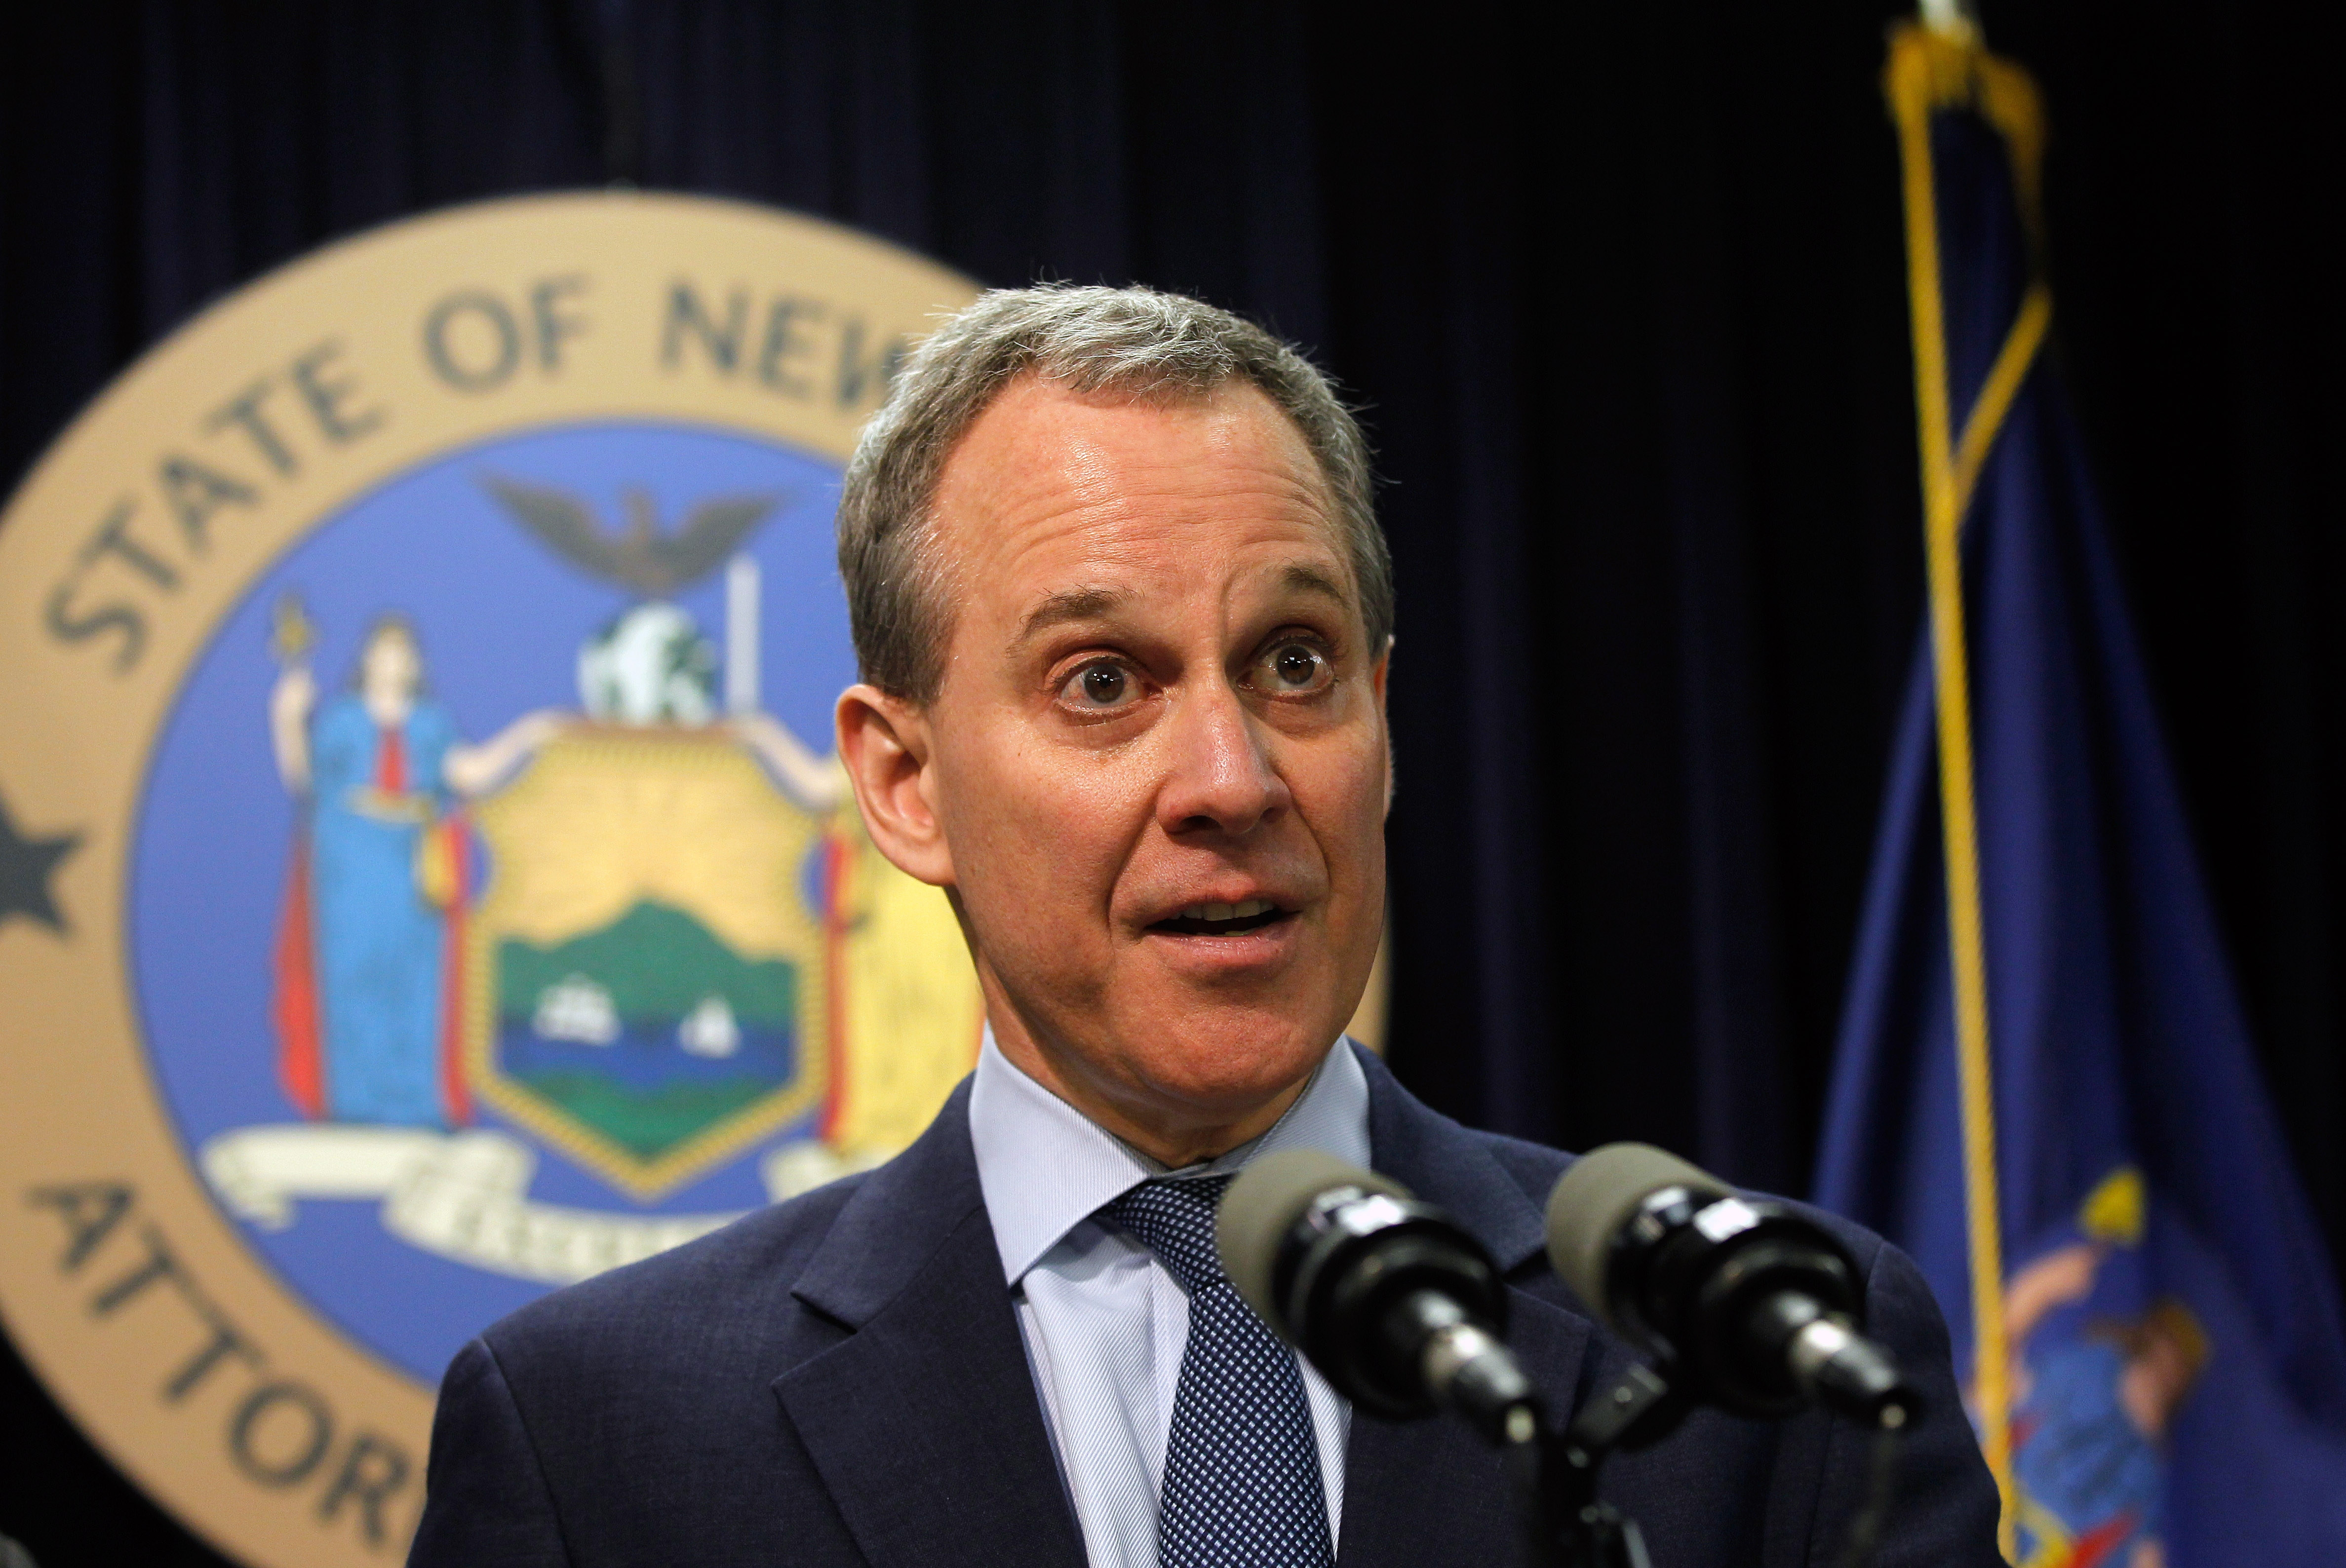 State Attorney General Eric T. Schneiderman stepped up his probe of SUNY Polytechnic with a raid on campus.